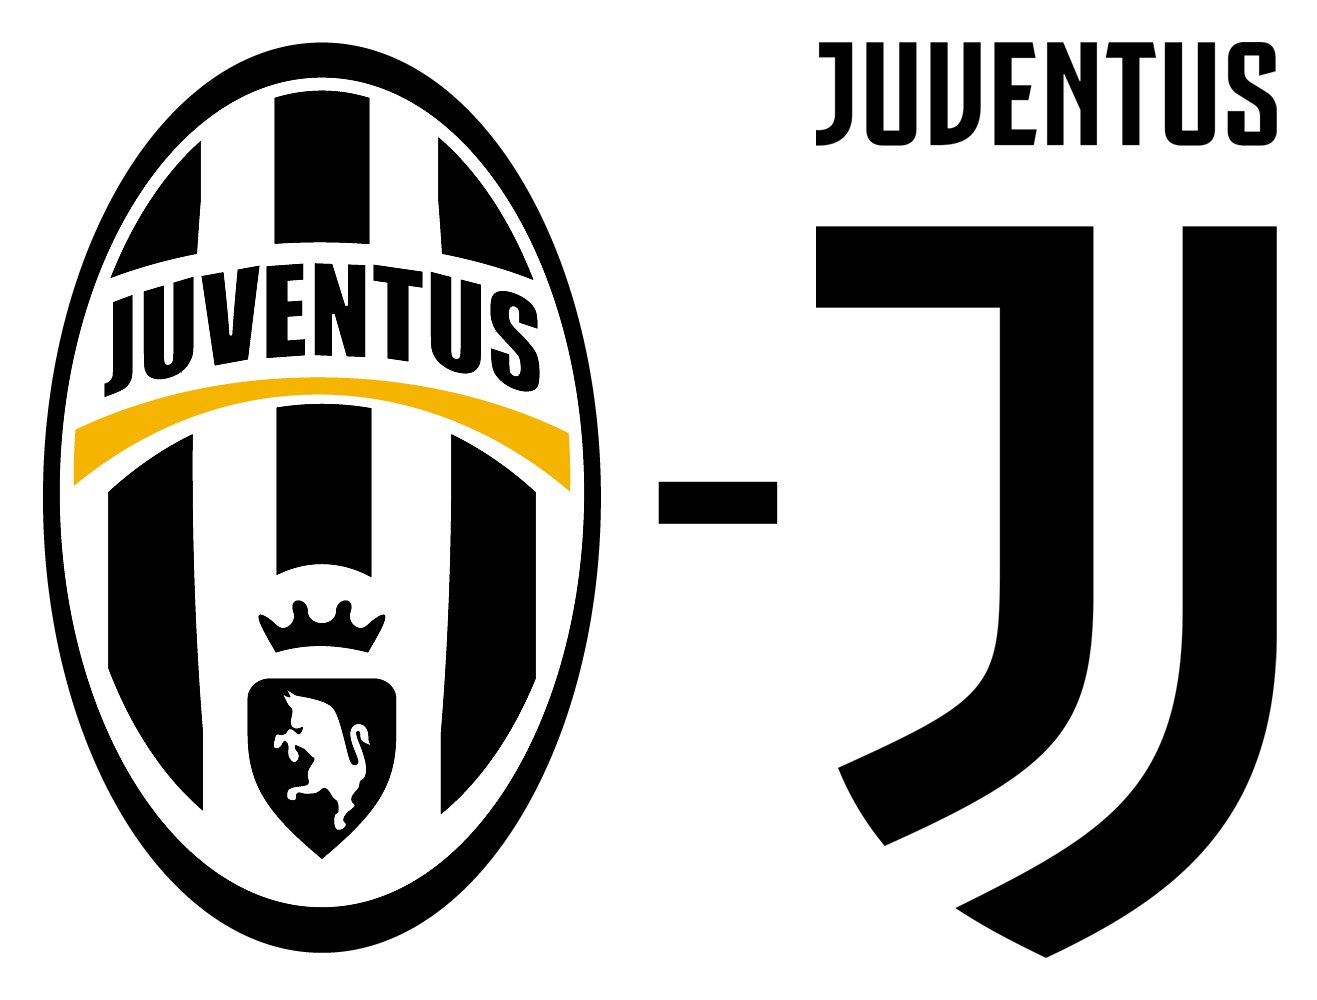 juventus logo and symbol meaning history png juventus logo and symbol meaning